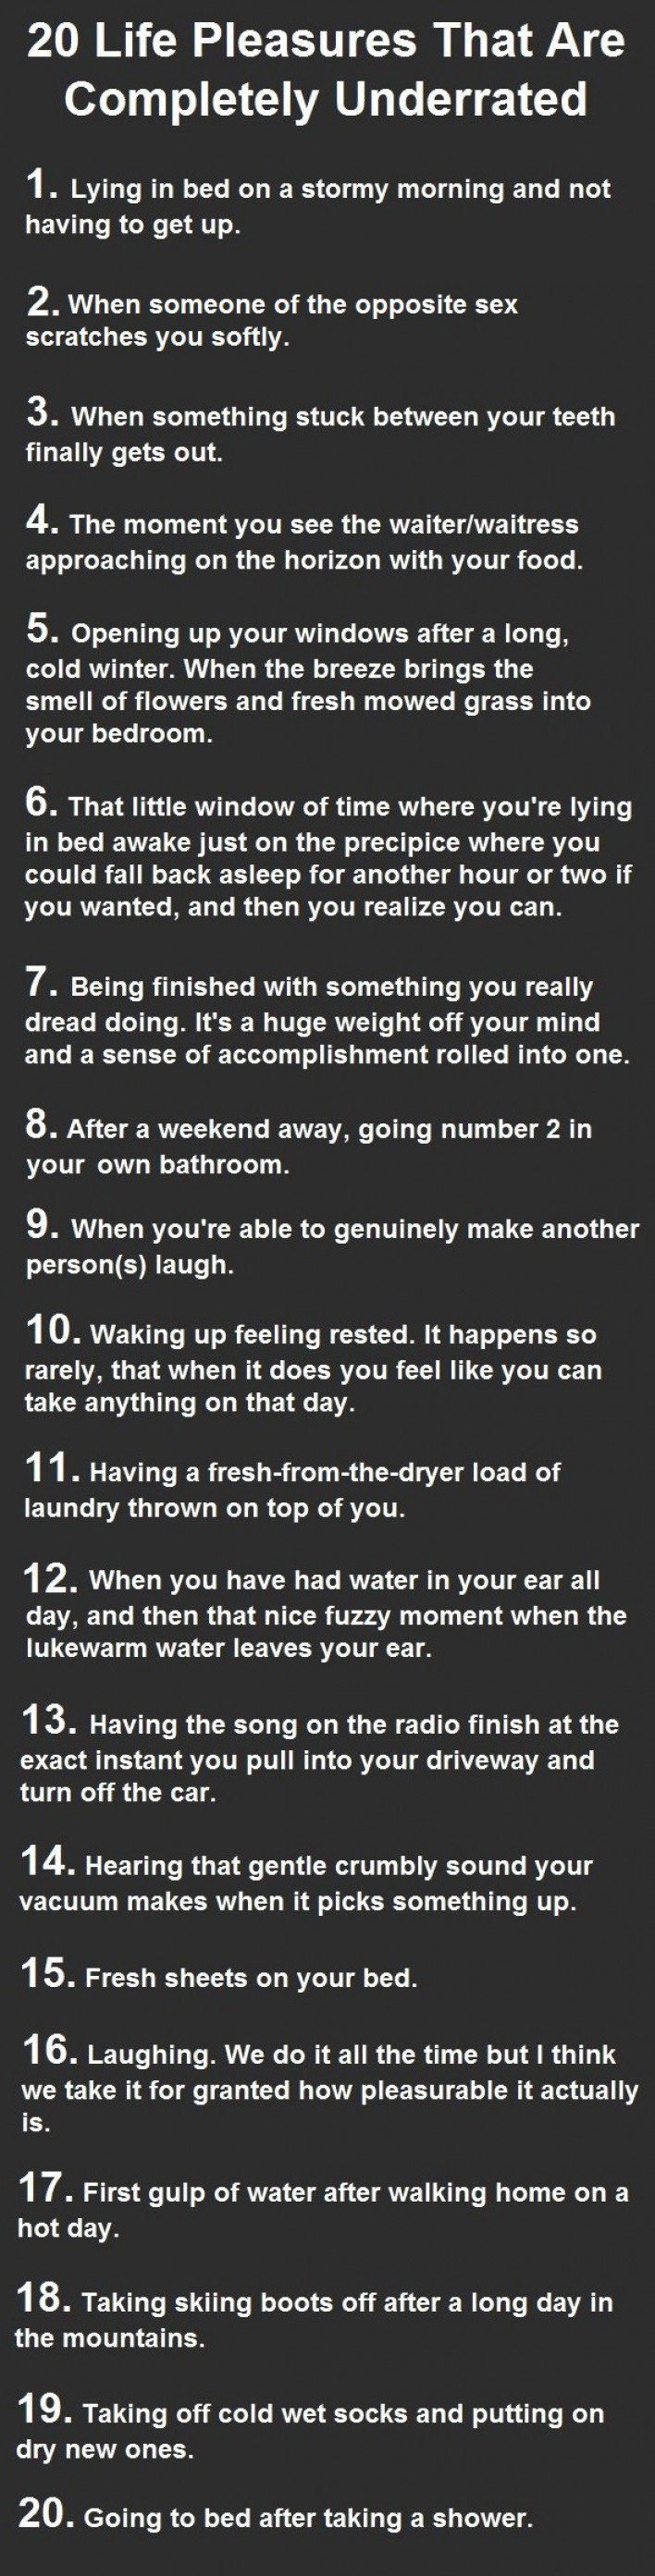 20 Life Pleasures That Are Completely Underrated. These Are Heaven.